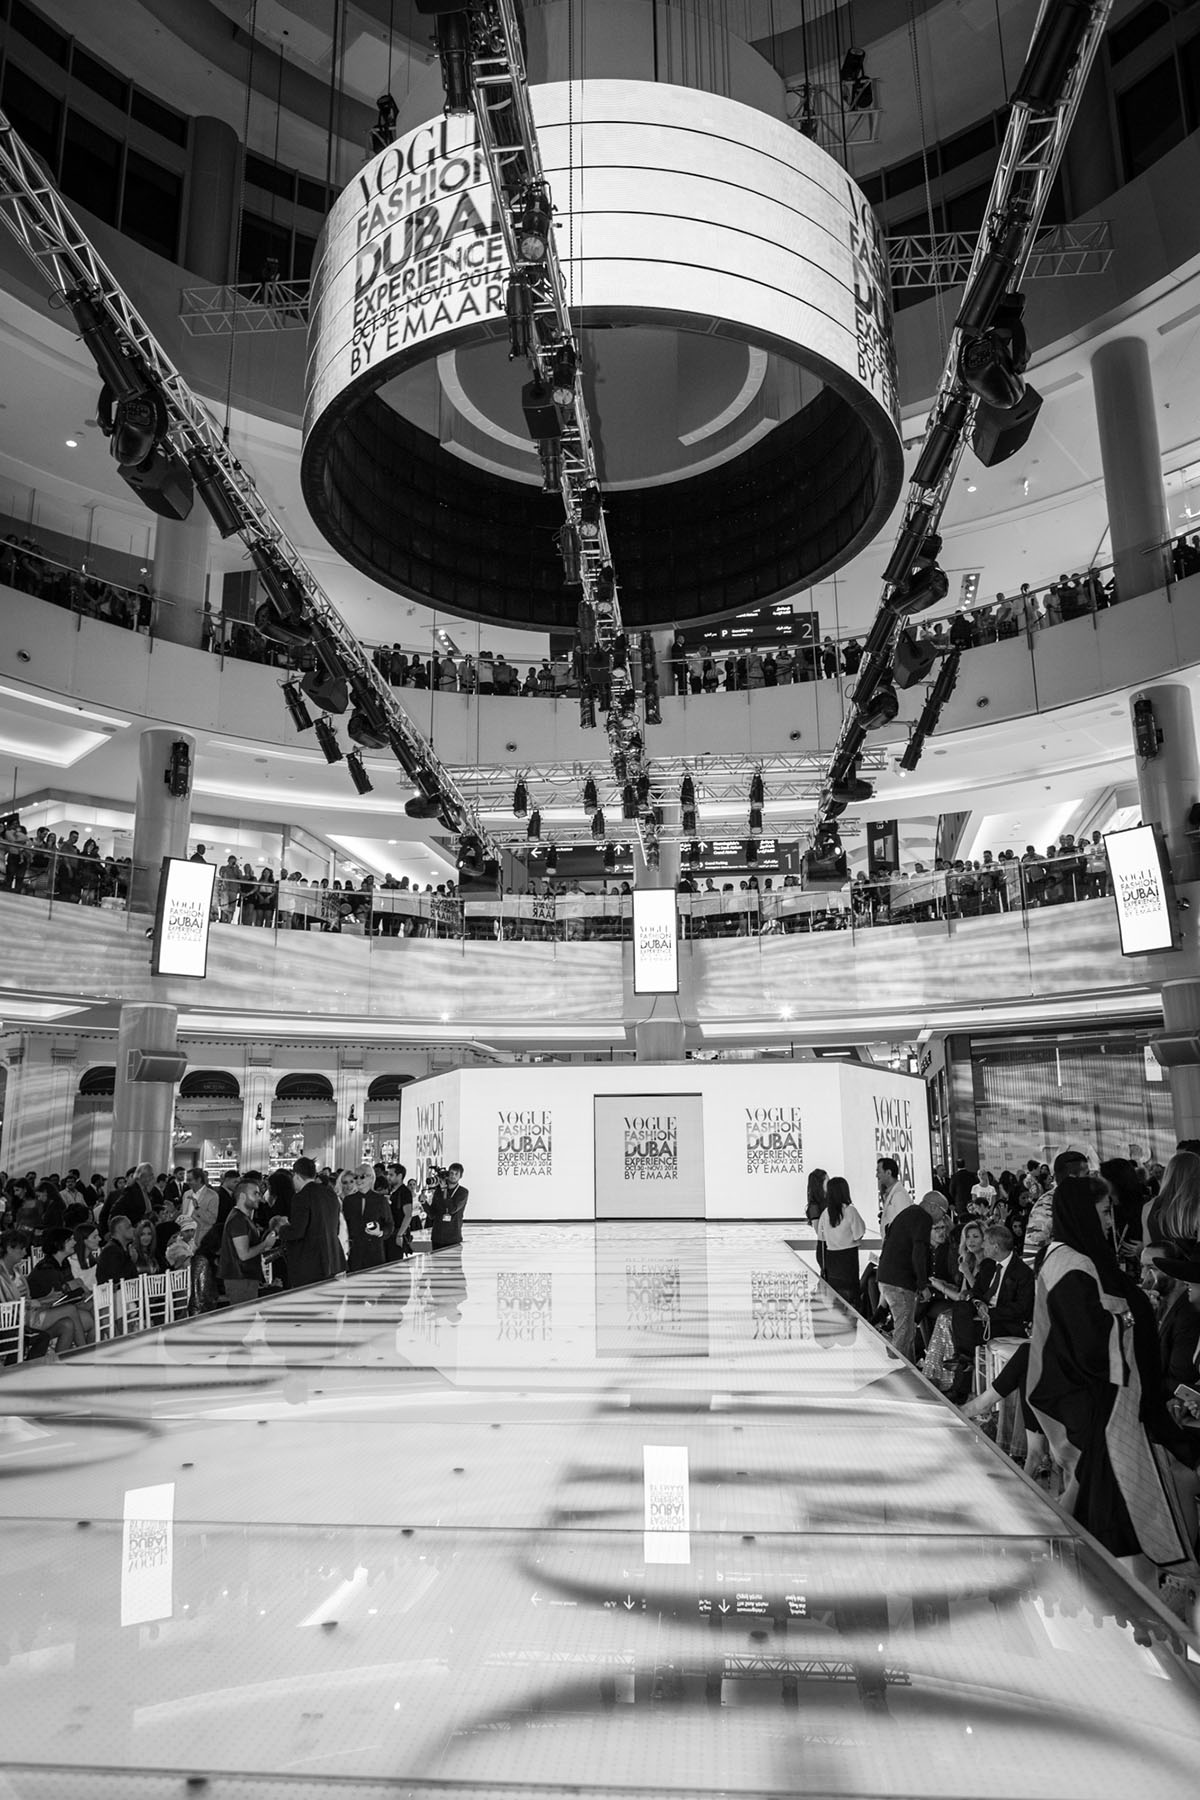 Catwalk set up at the Vogue Fashion Show event in Dubai Mall by Loesje Kessels Fashion Photographer Dubai